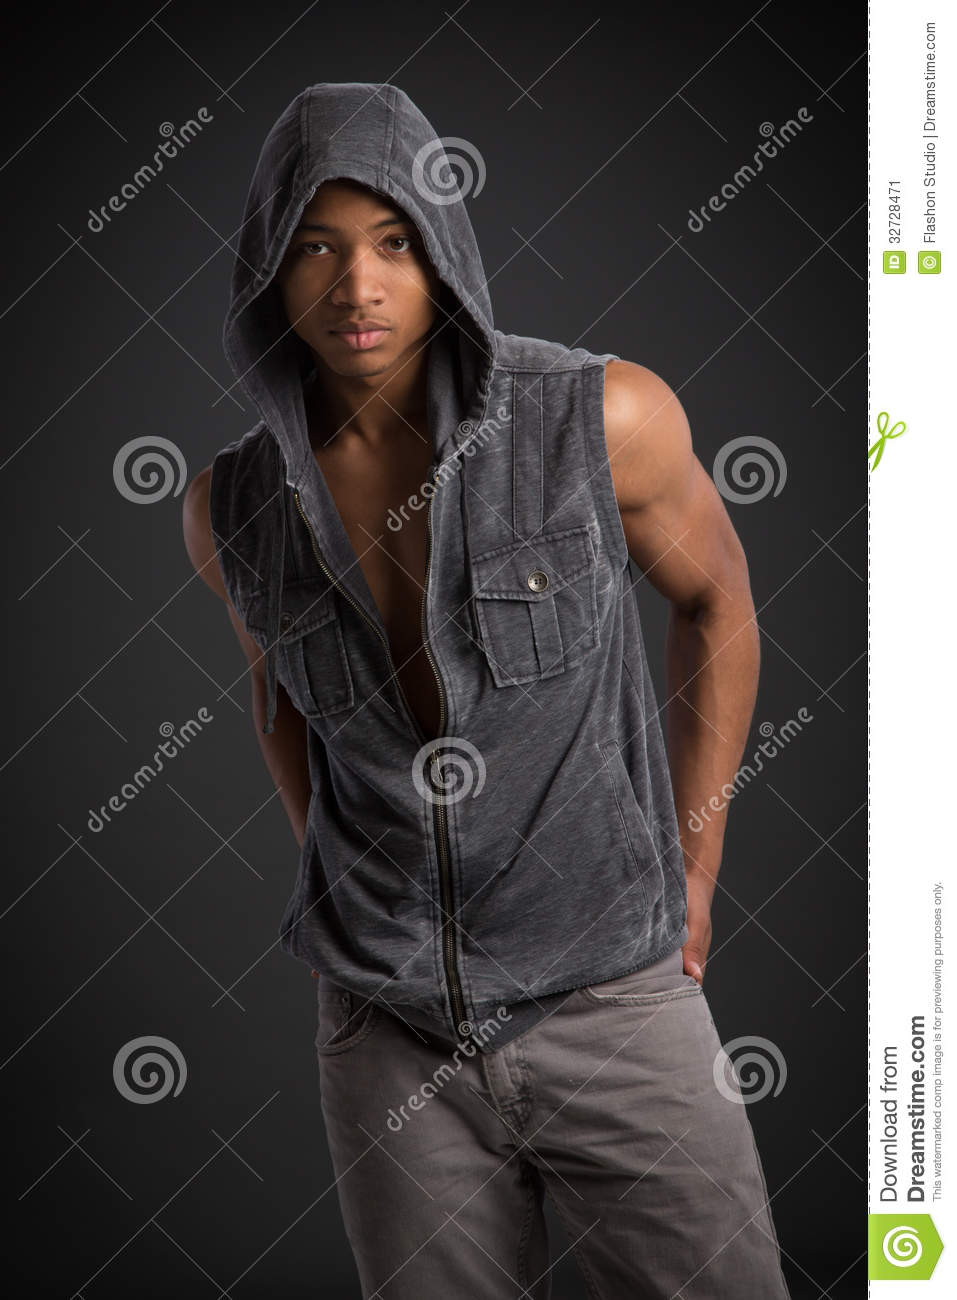 Casual Dressed Young African American Male Fashion Model